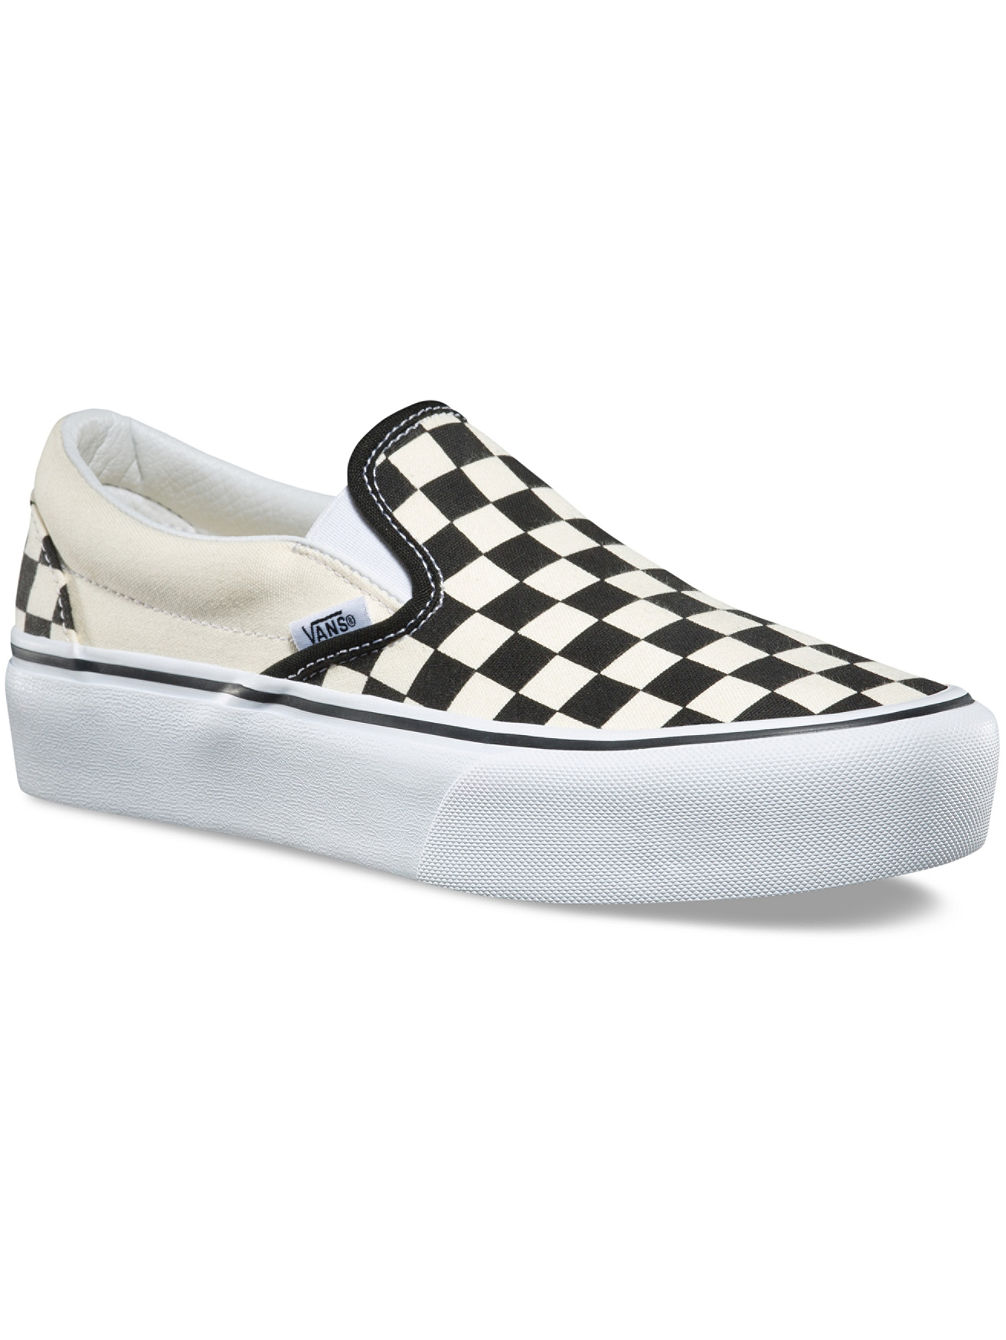 Checkerboard Classic Platform Slip-Ons